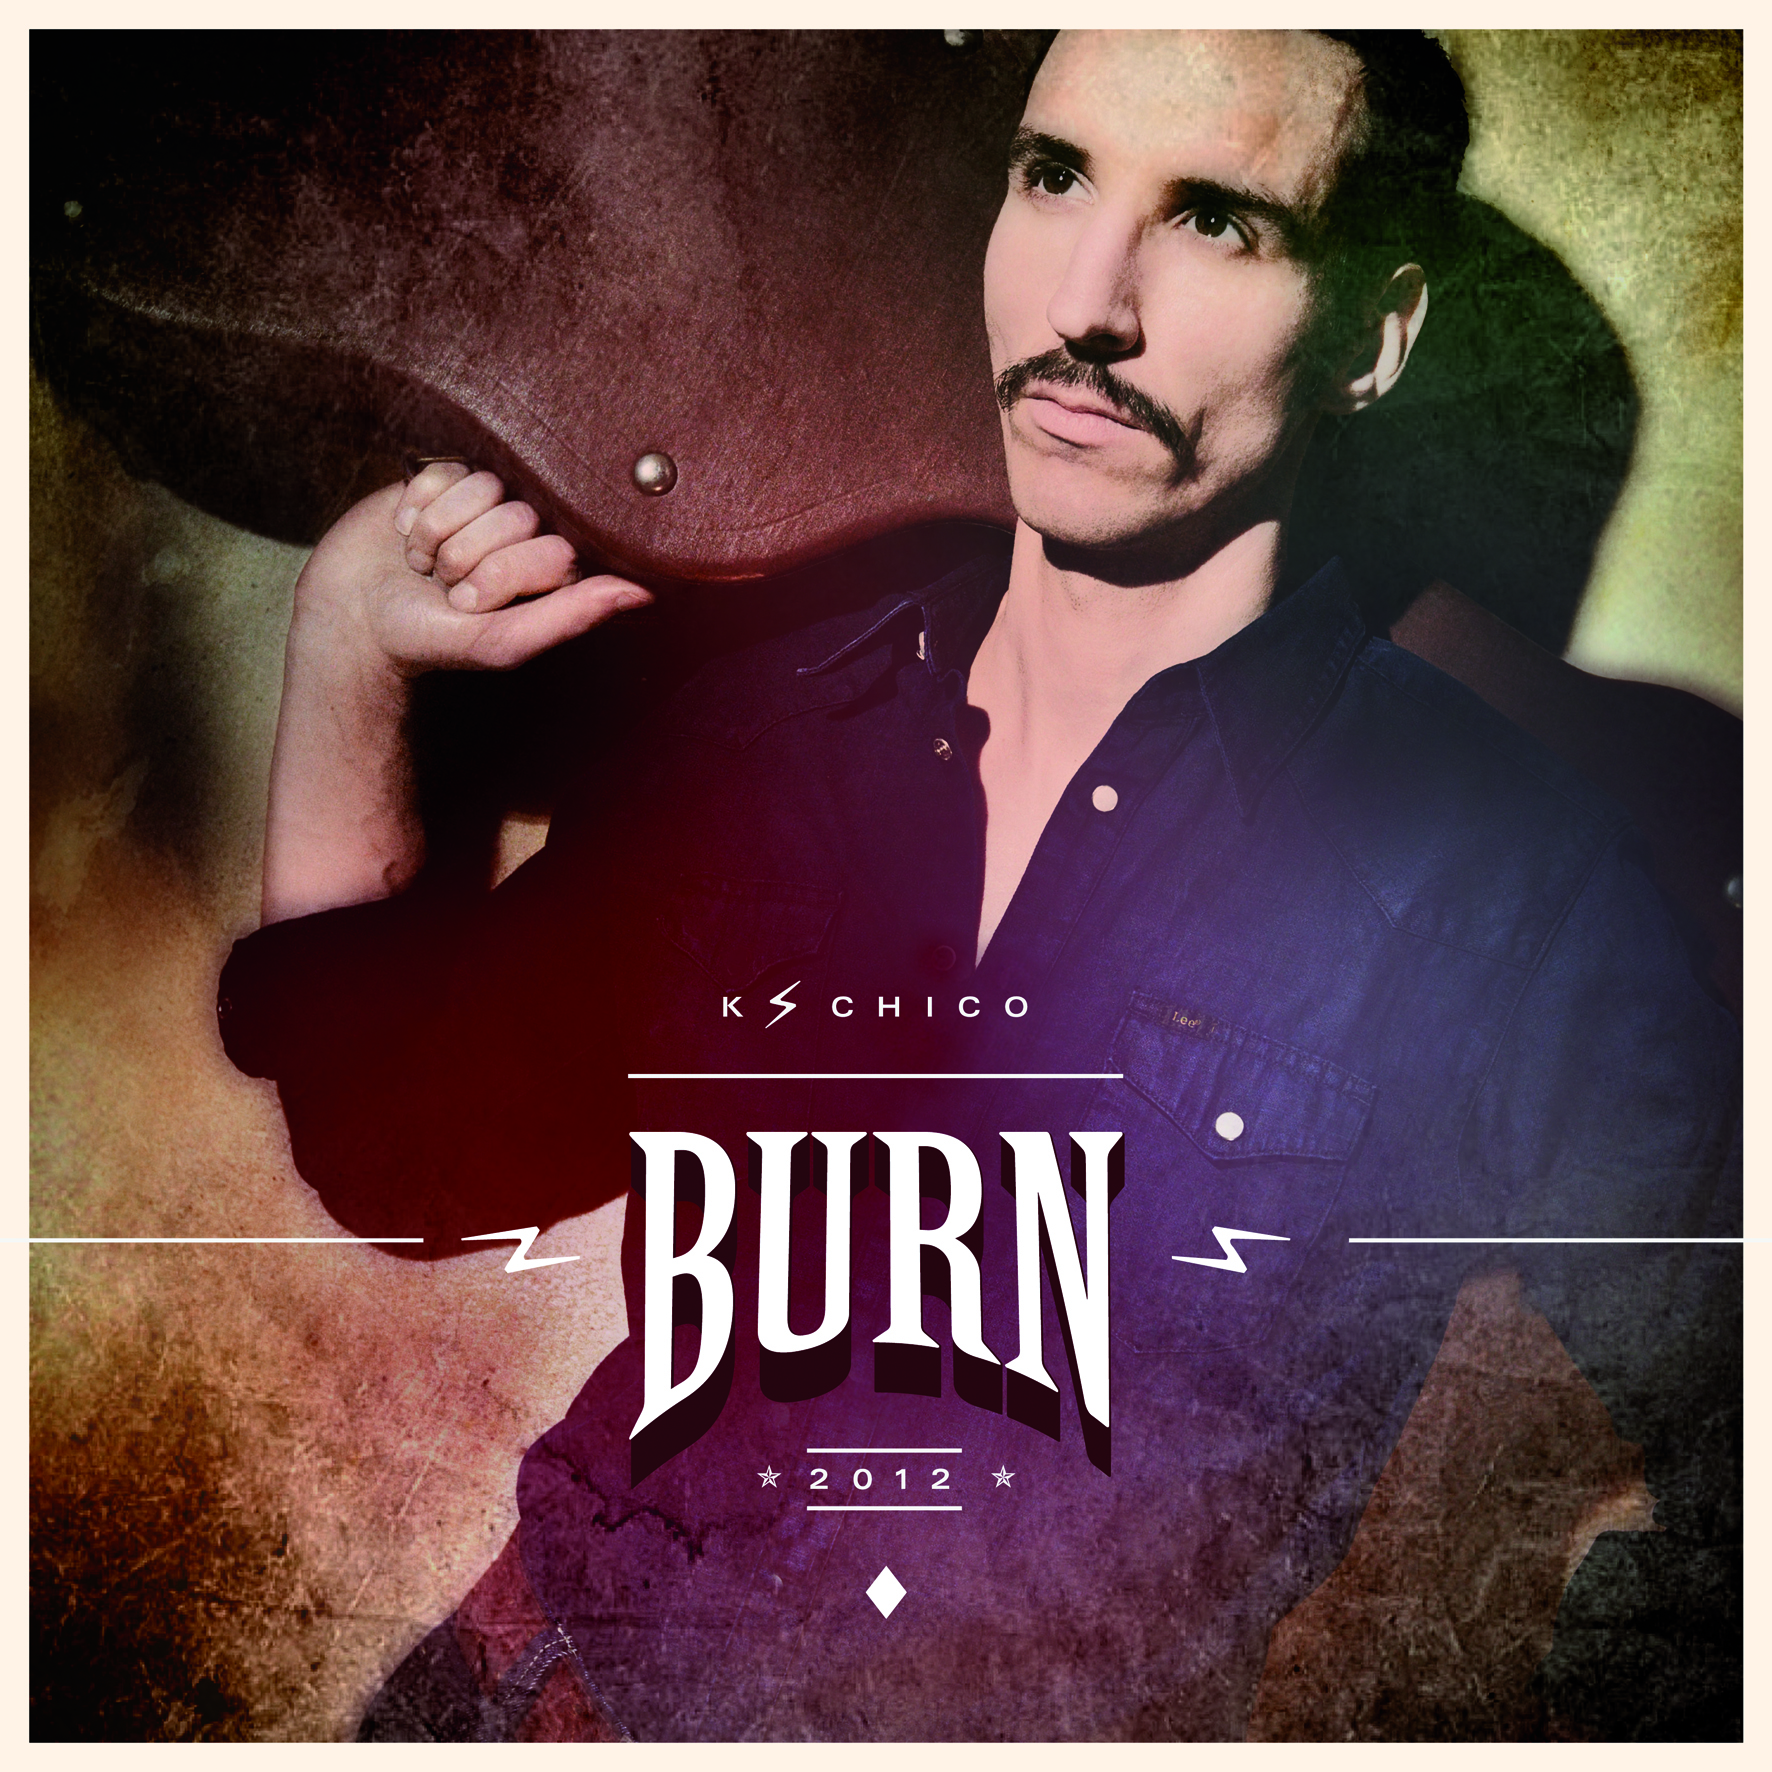 http://www.kchico.com/files/photos/k_chico-burn-cover.jpg